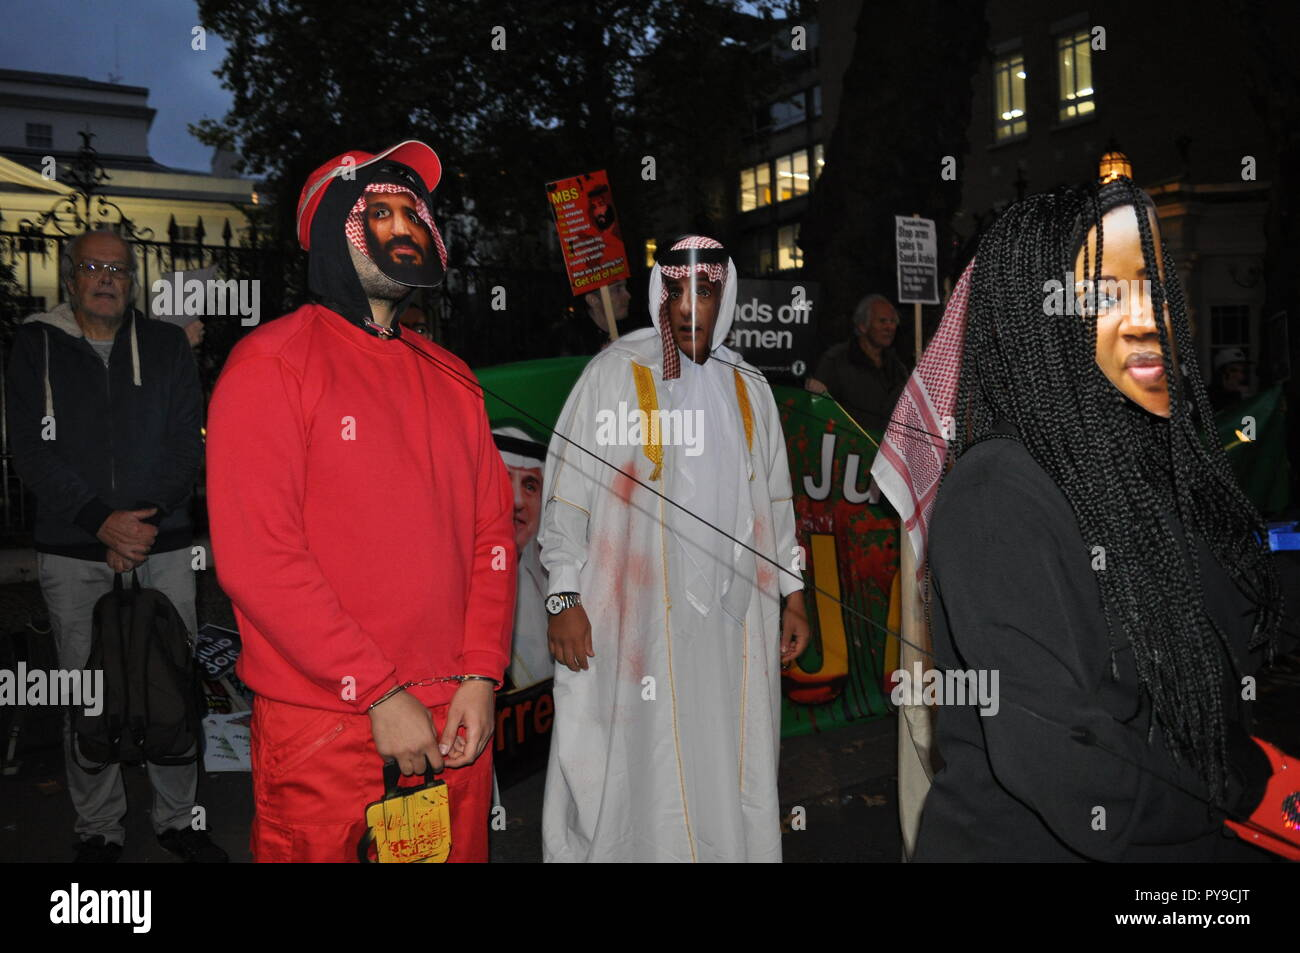 London/UK. 25th October 2018. Demonstration for justice for Jamal Khashoggi a dissident journalist from Saudi Arabia who was murdered in Istanbul. - Stock Image